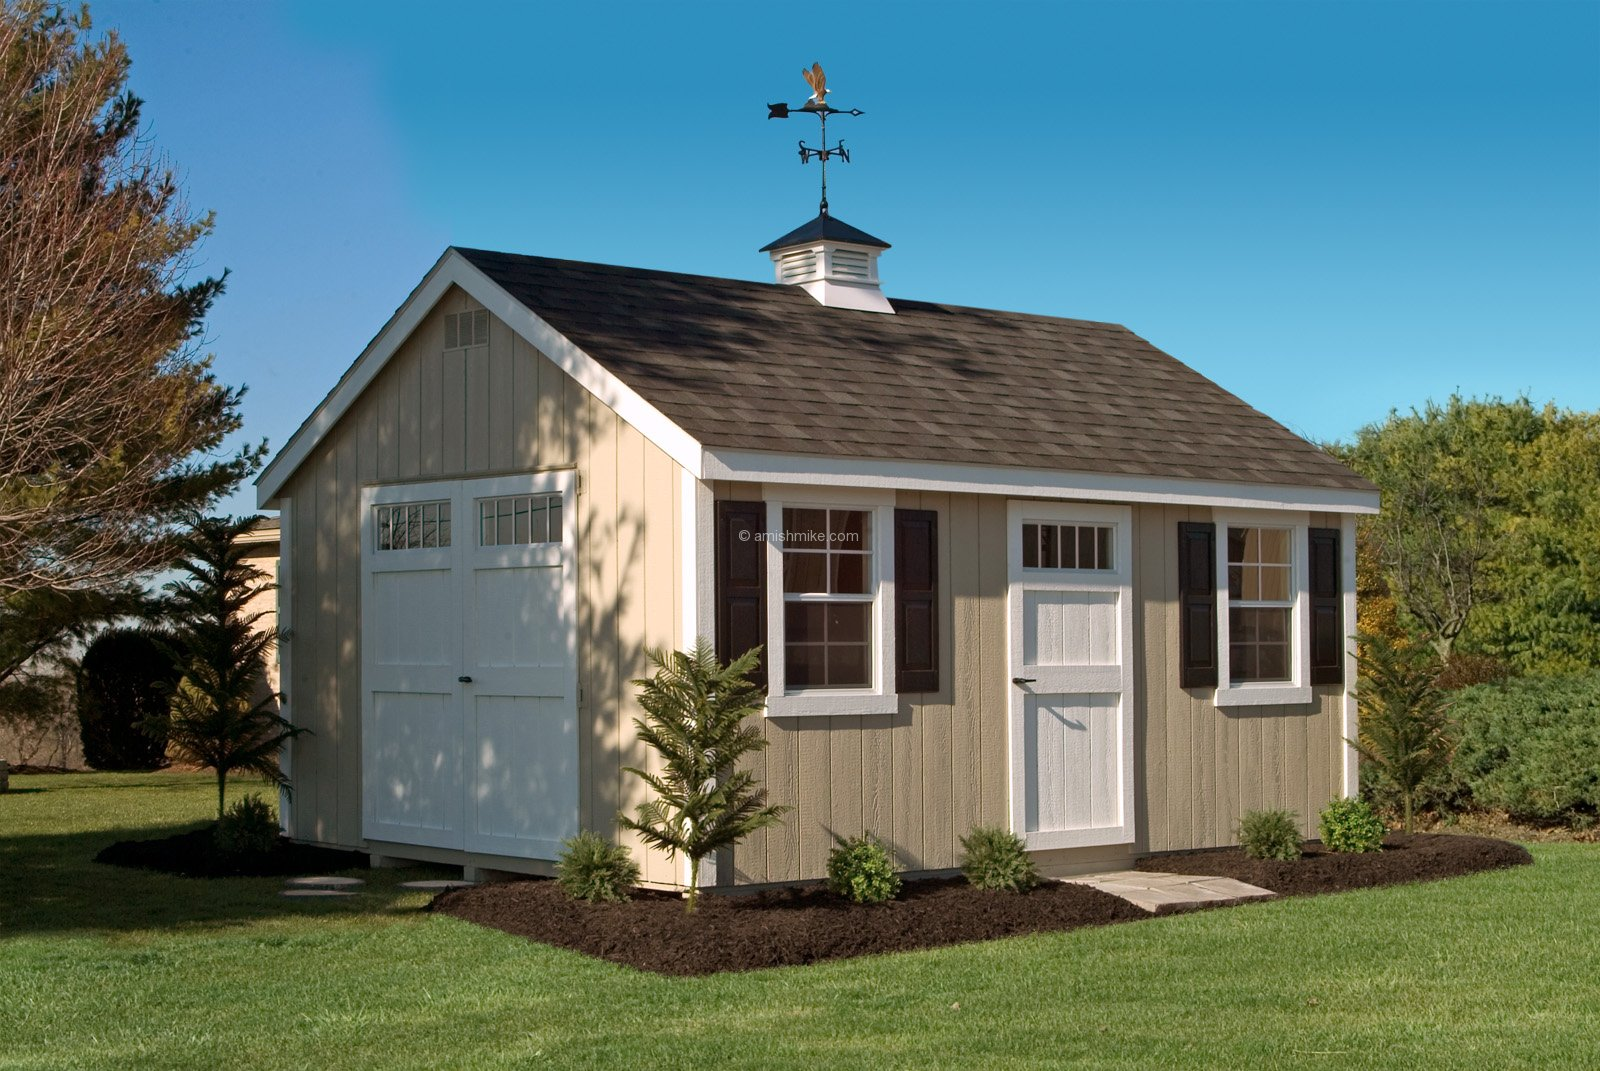 Deluxe with dormer transom windows and cupola - 12 X 16 New England